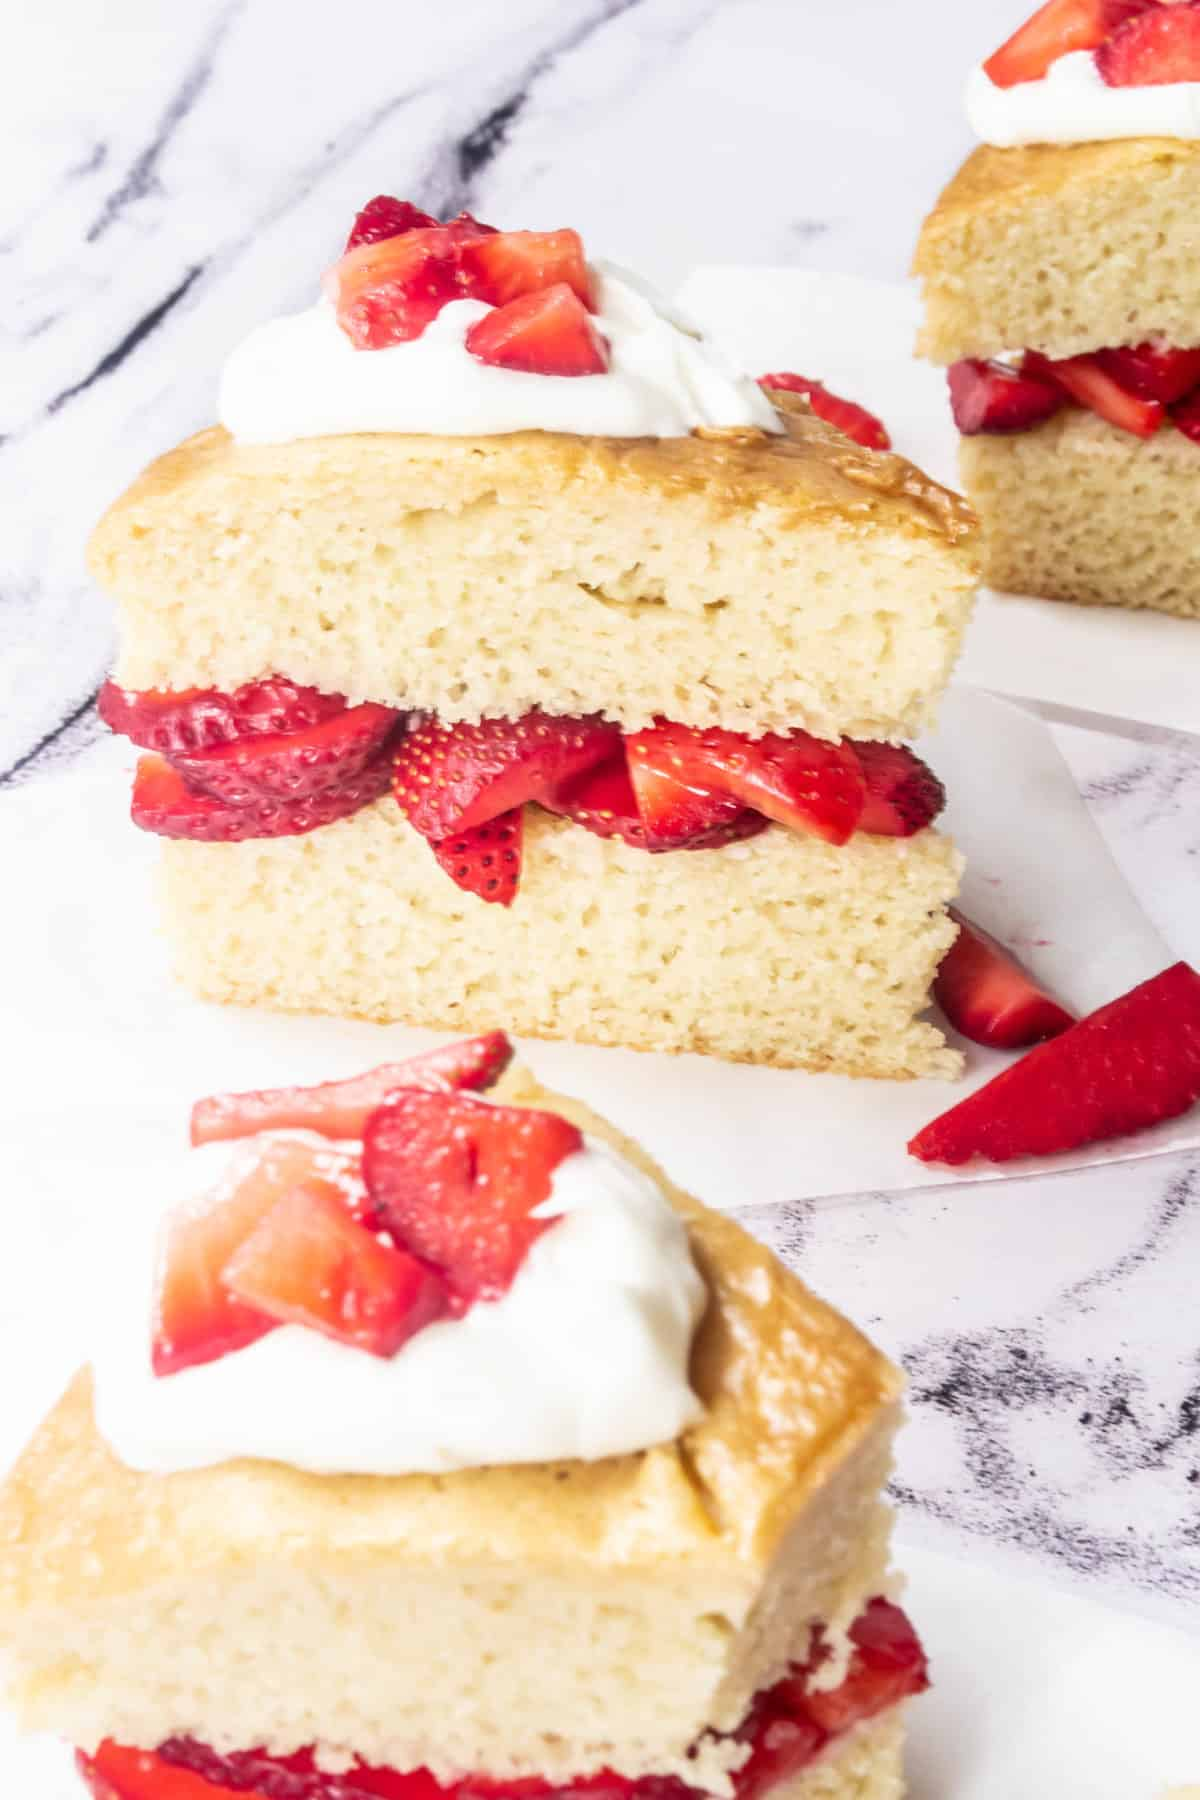 Layered strawberry shortcake topped with fresh strawberries and whipped cream.